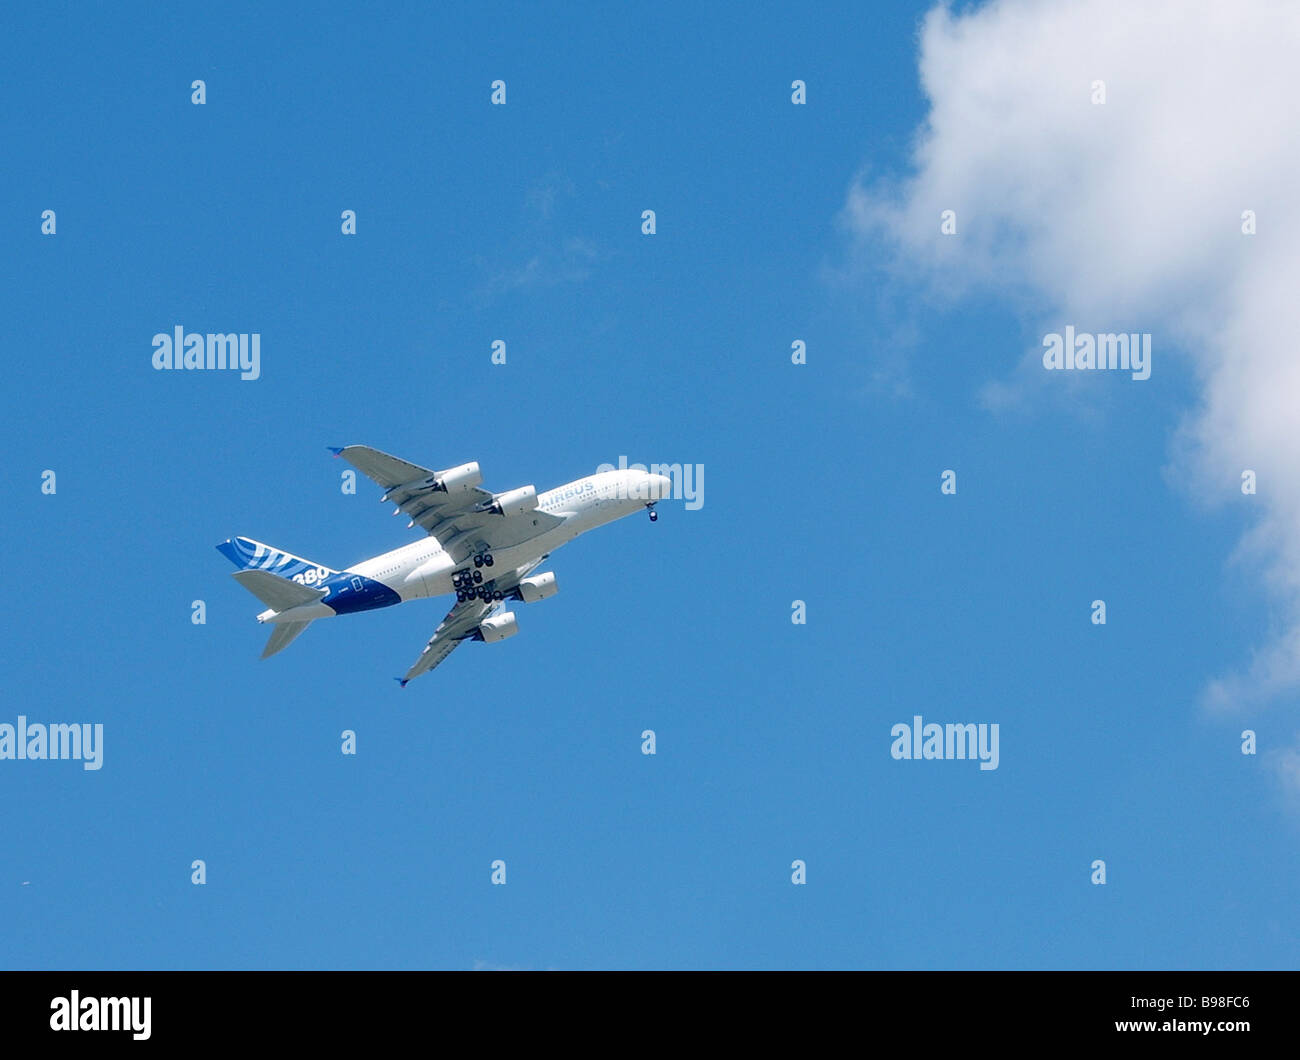 A demonstration flight of the A 380 airbus at the 46th air show in Le Bourget France - Stock Image